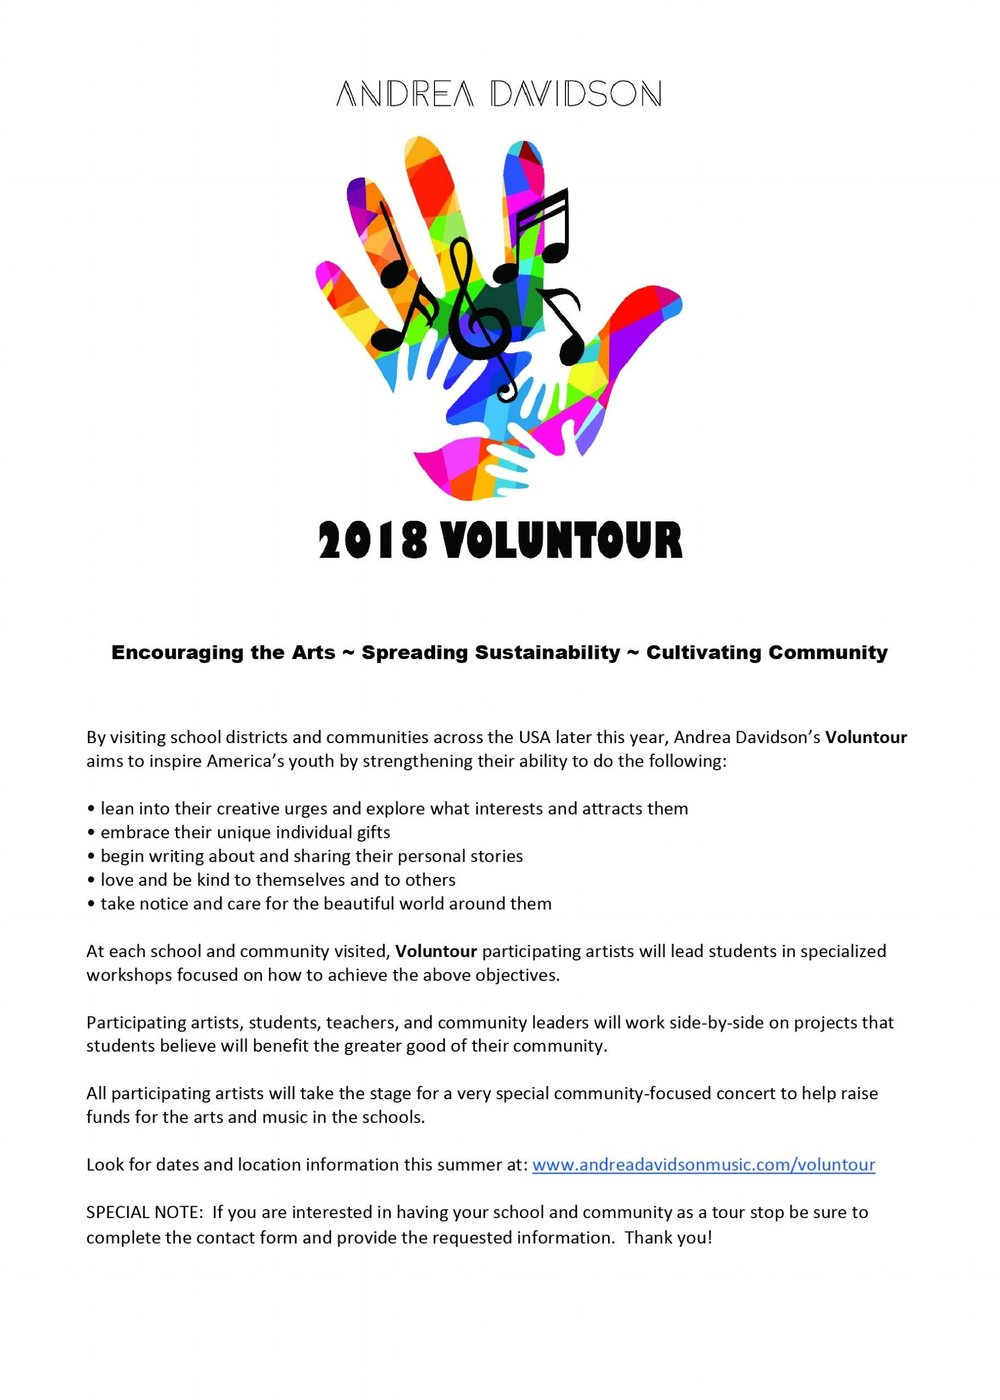 Voluntour Flyer Sheet.jpg